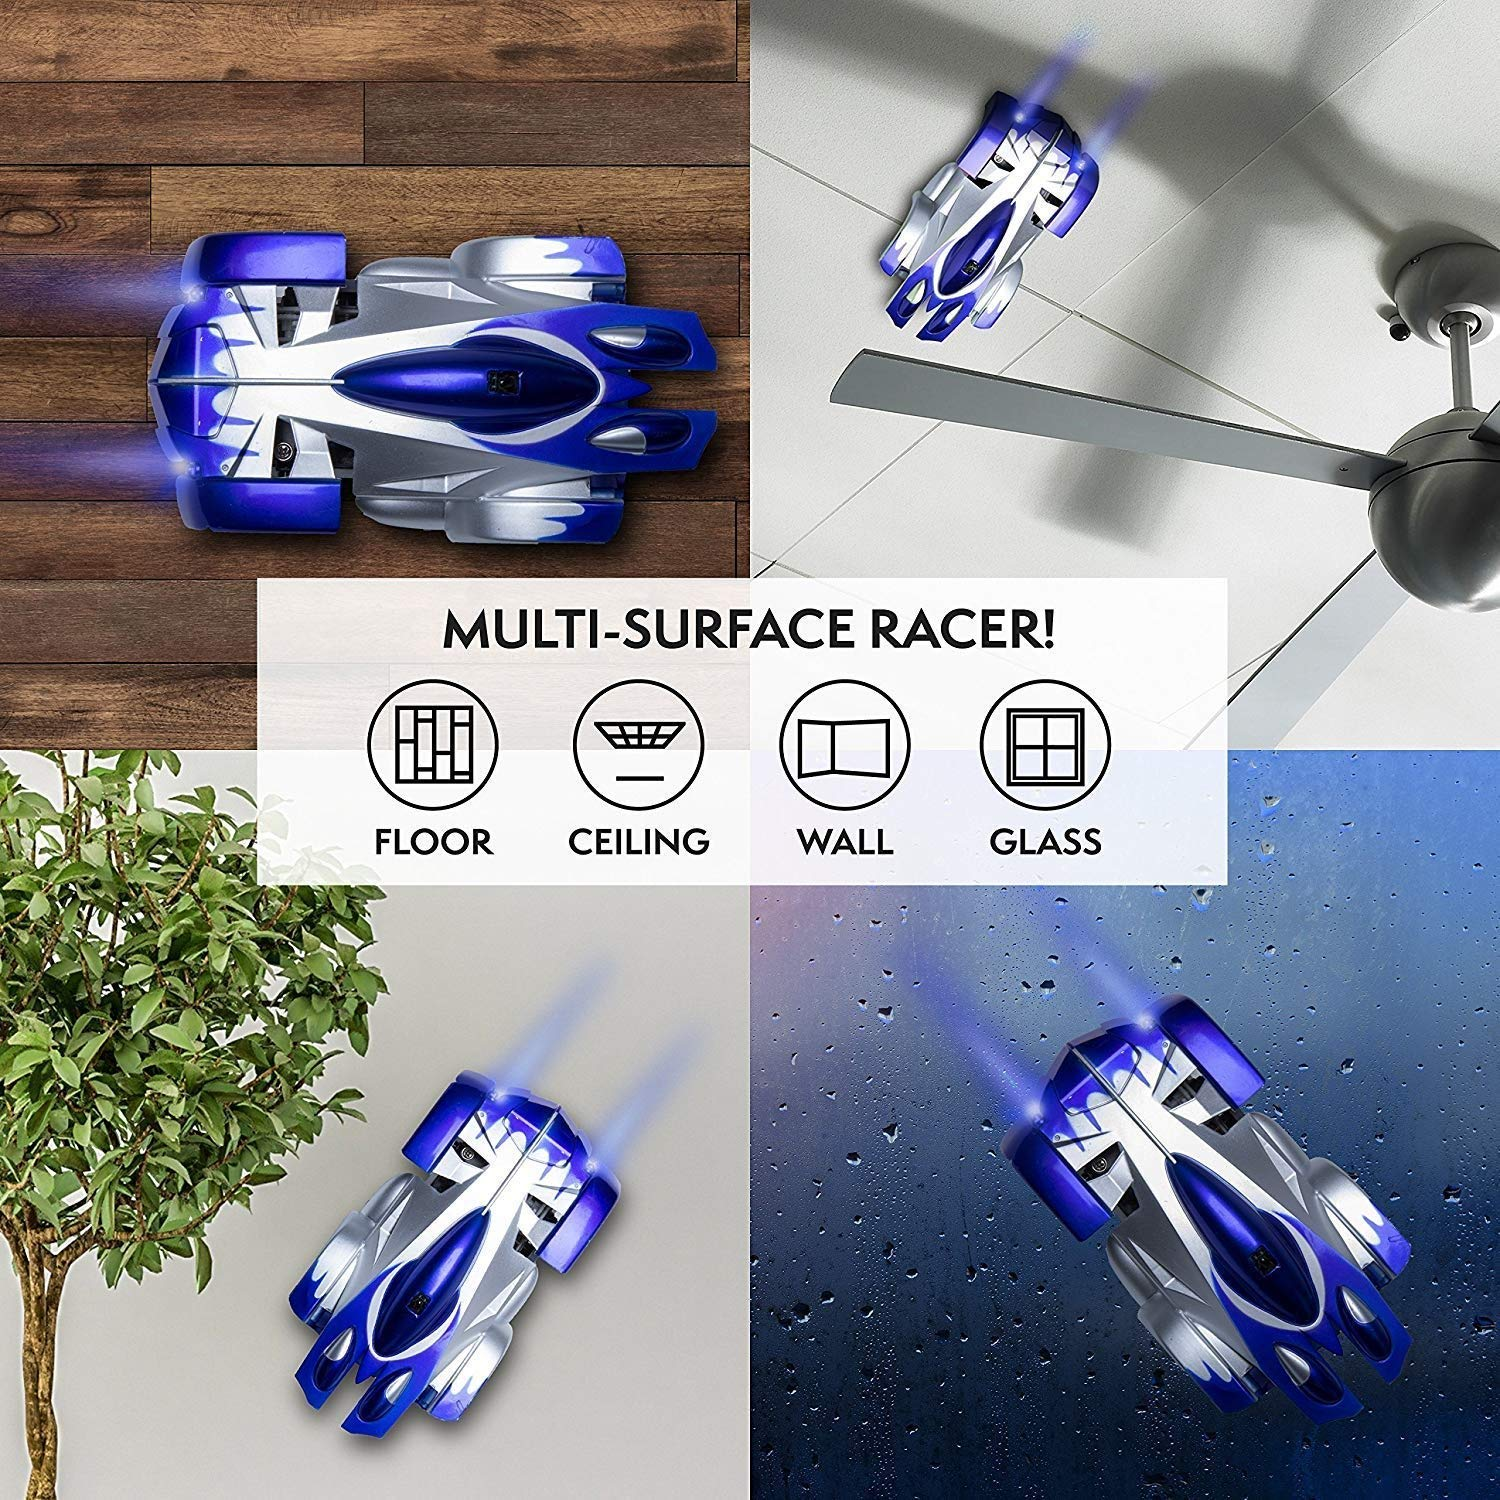 Rechargeable 360 Rotating Durable Race Remote Control Car with LED Light Blue Car Toy for 5-6 Year Old Boy Flywind Gravity Defying Wall Climbing RC Toy for Kids Toys 6-10 Boys Birthday Gifts